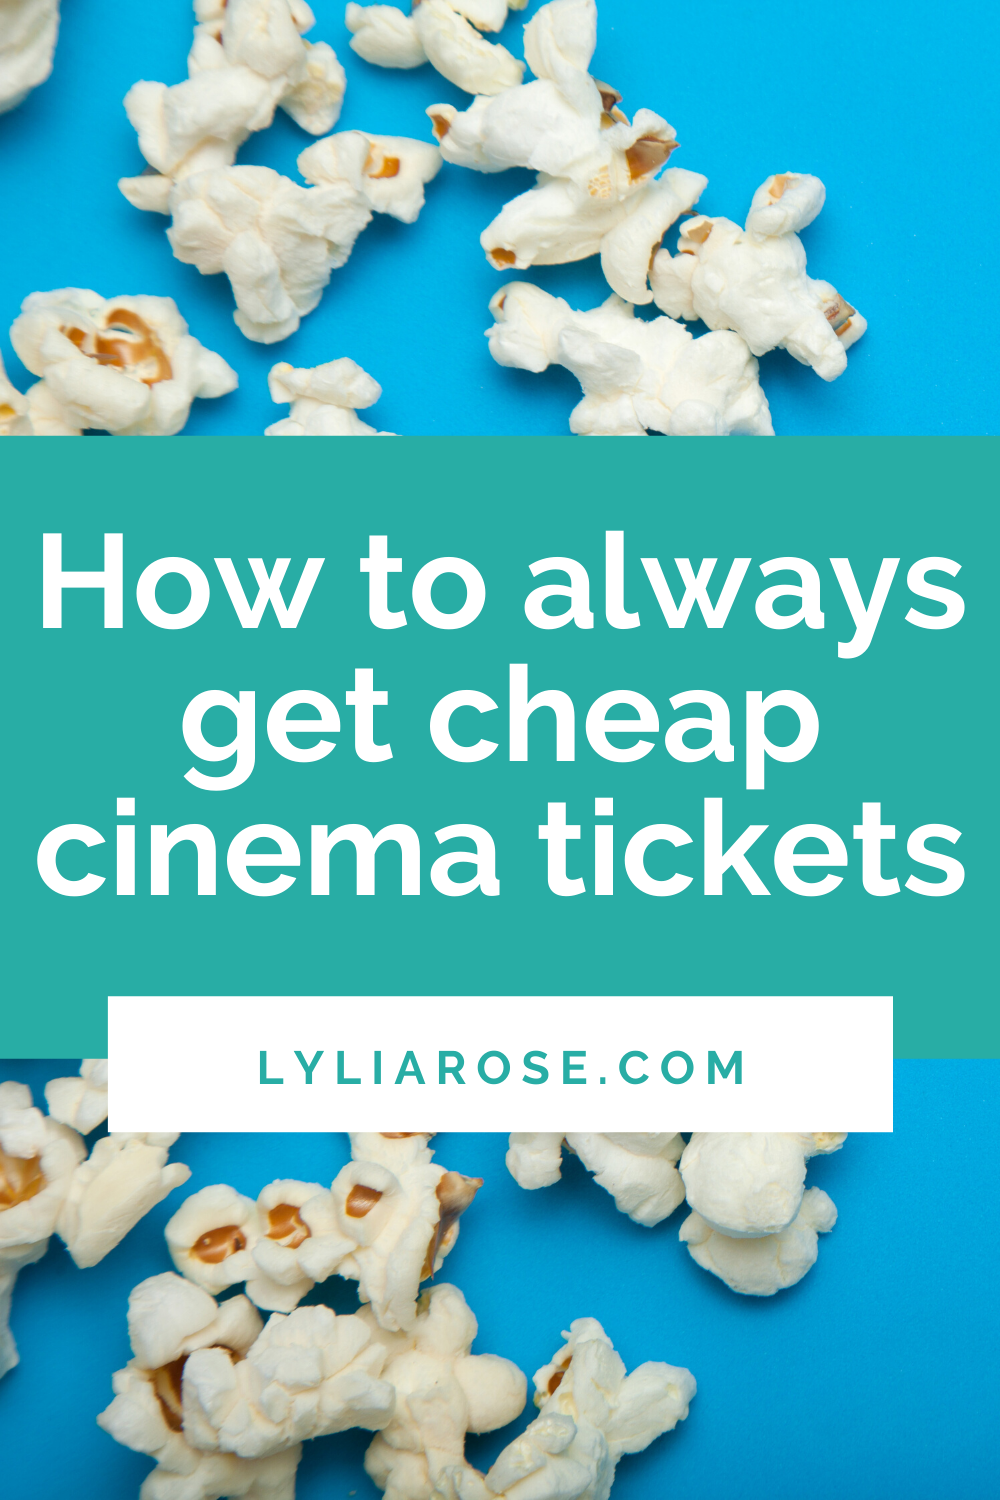 How to always get cheap cinema tickets (4)